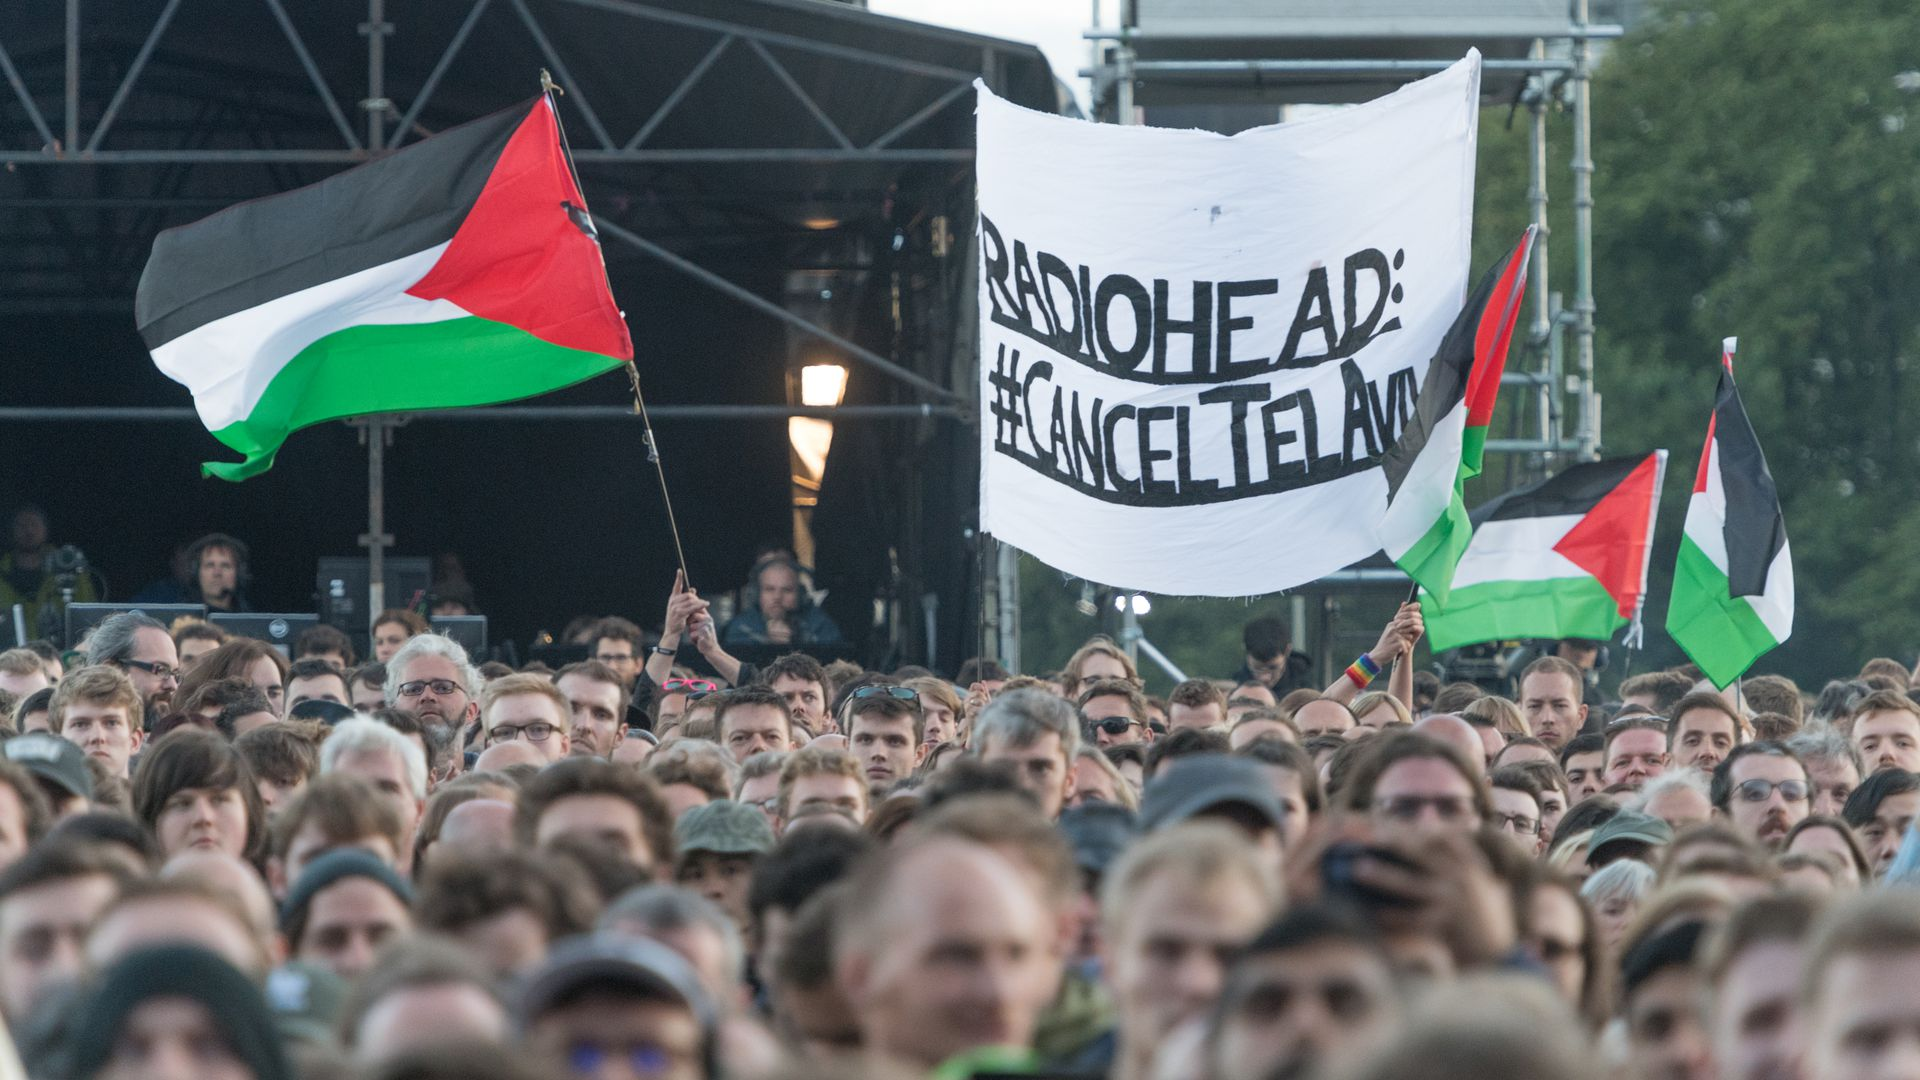 Protestors hold up a banner calling for Radiohead to cancel a show in Israel.